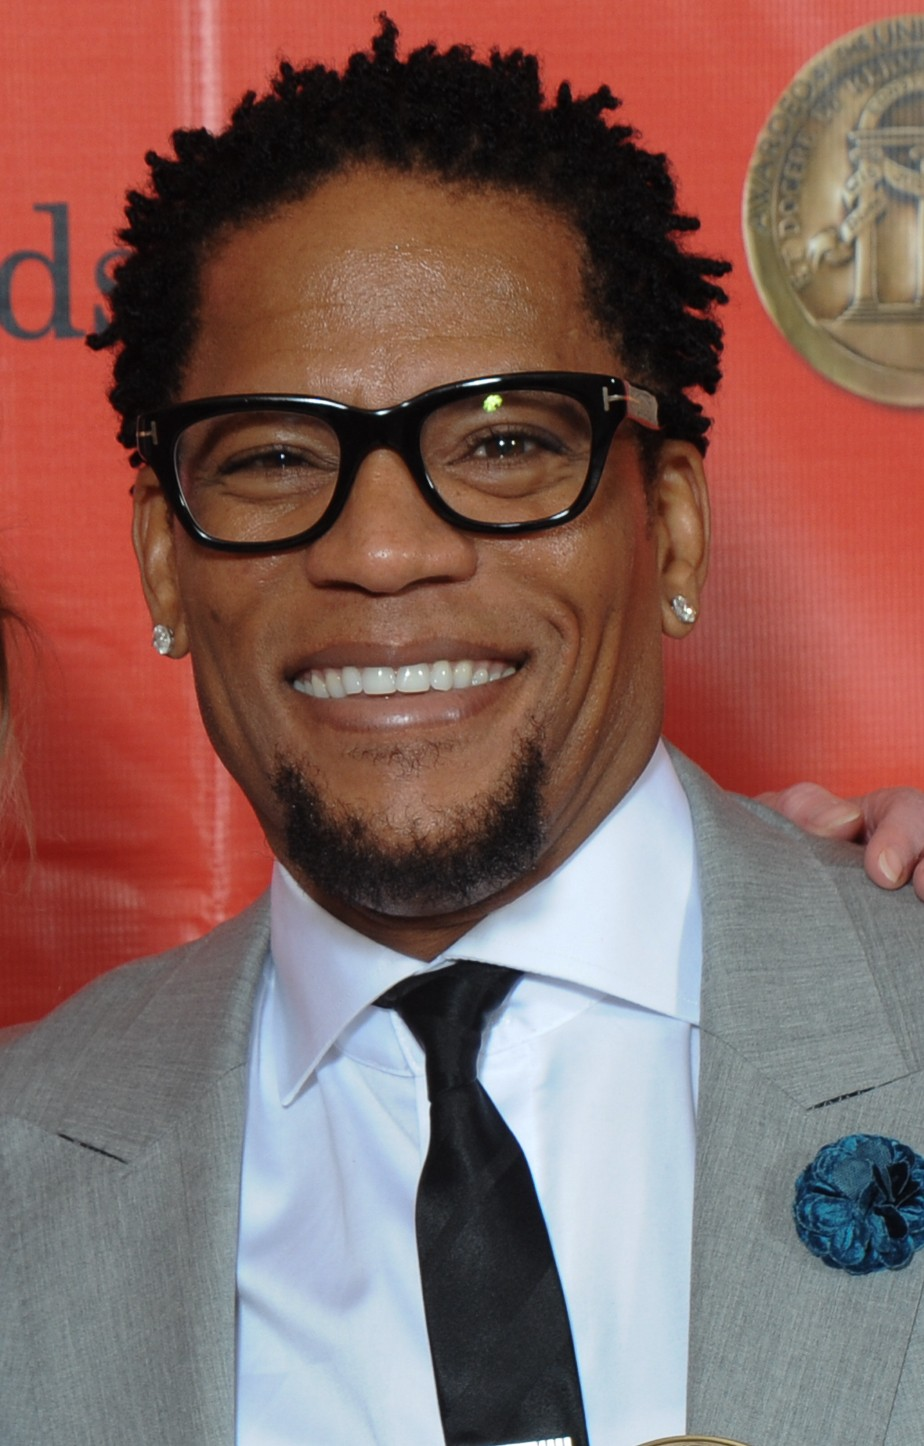 D.L. Hughley On Caitlyn Jenner: 'Looks Like Mrs. Doubtfire' And 'P.E.Teacher' | D.L. Hughley